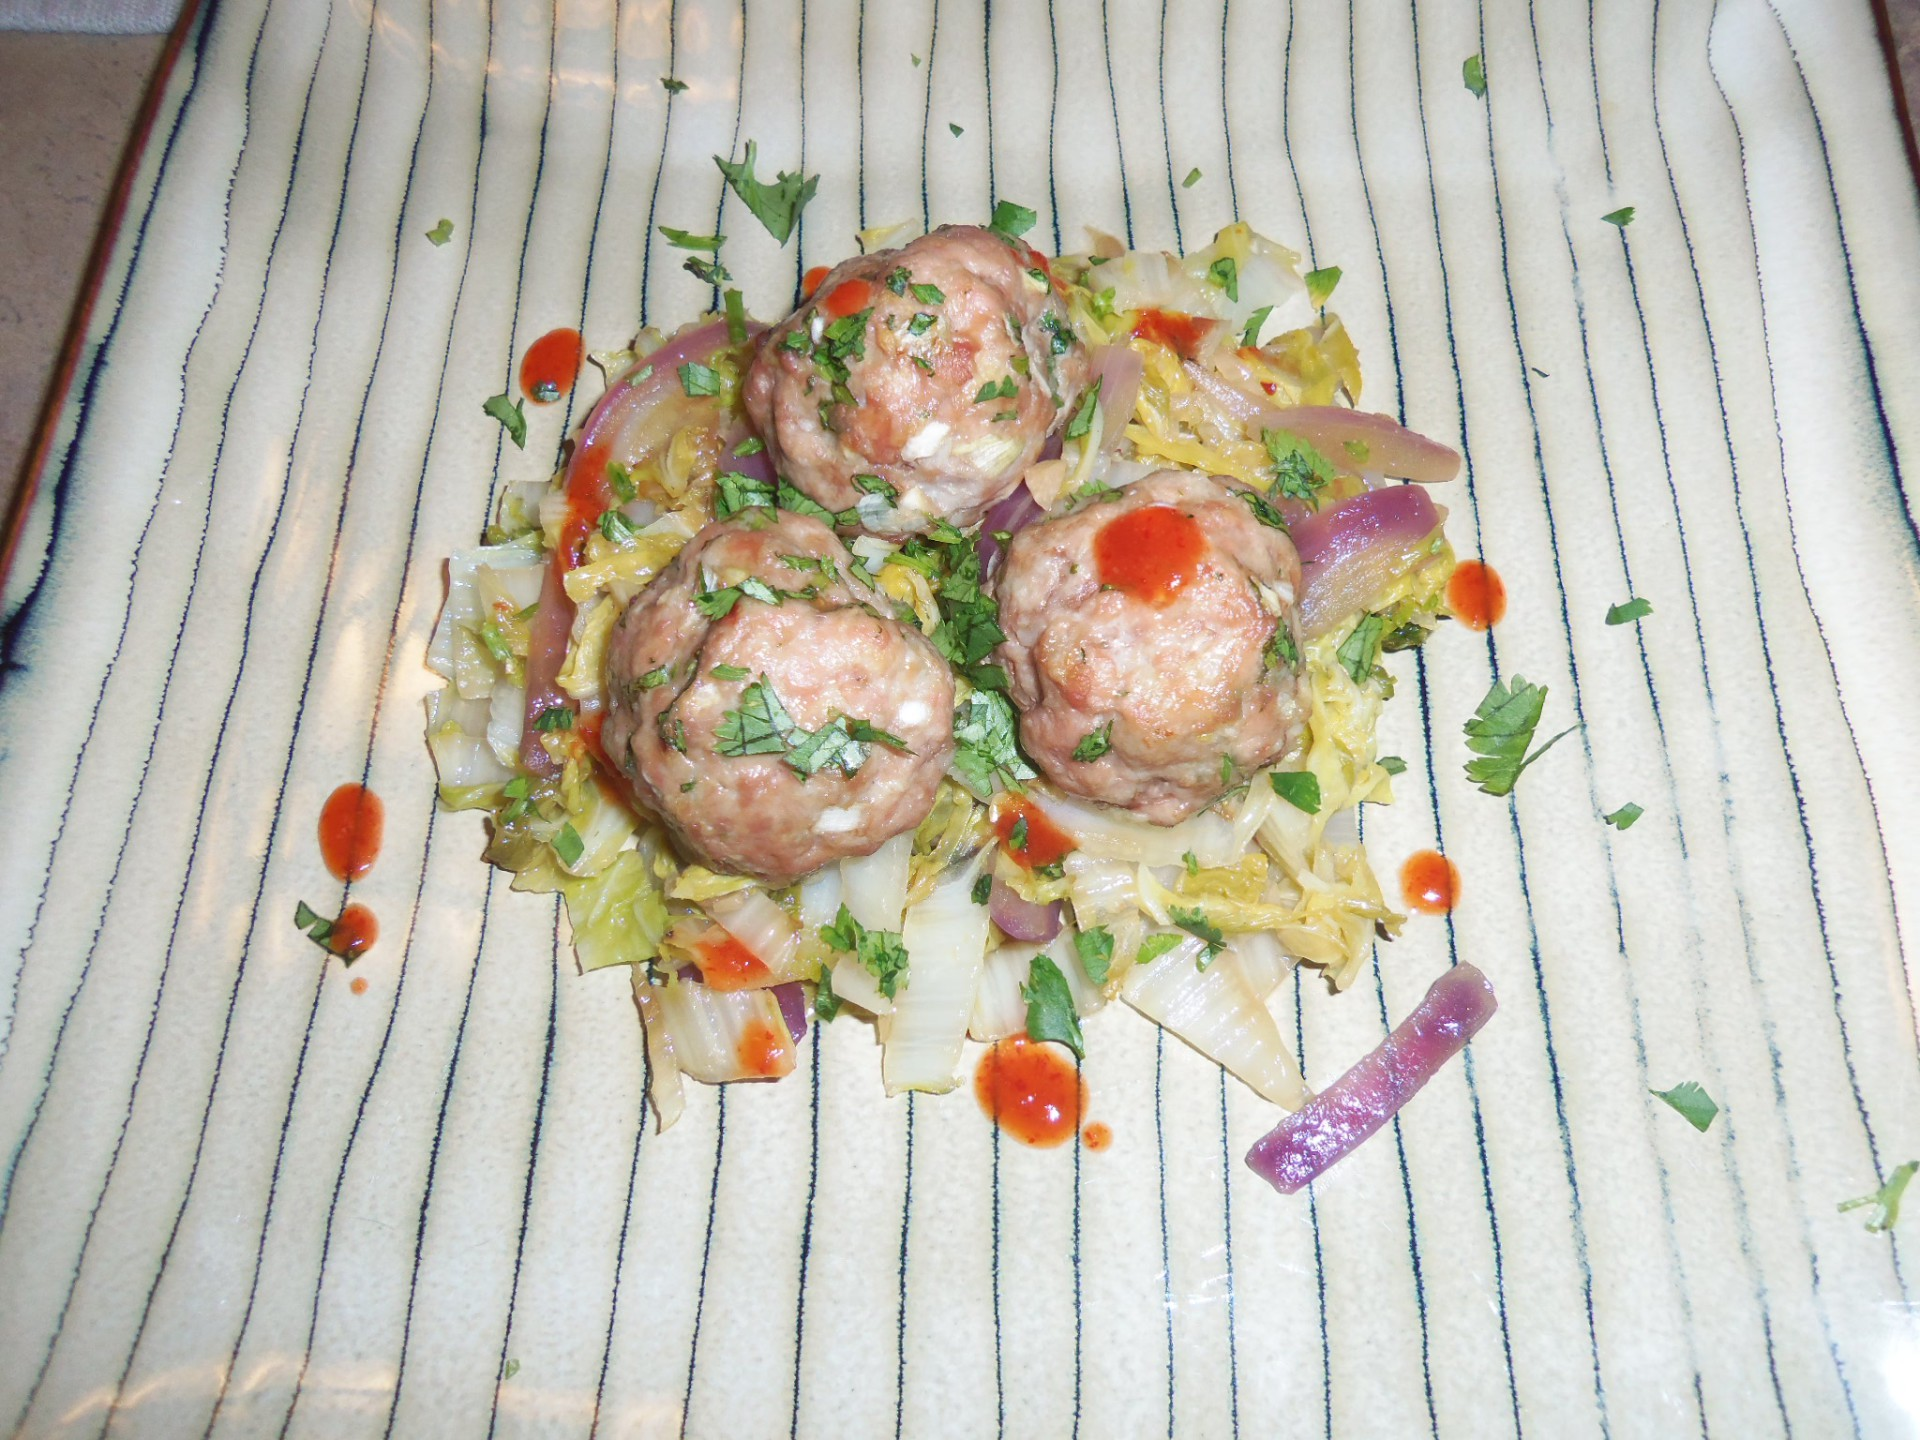 Savory Pork Meatballs with Napa Cabbage Stir-Fry